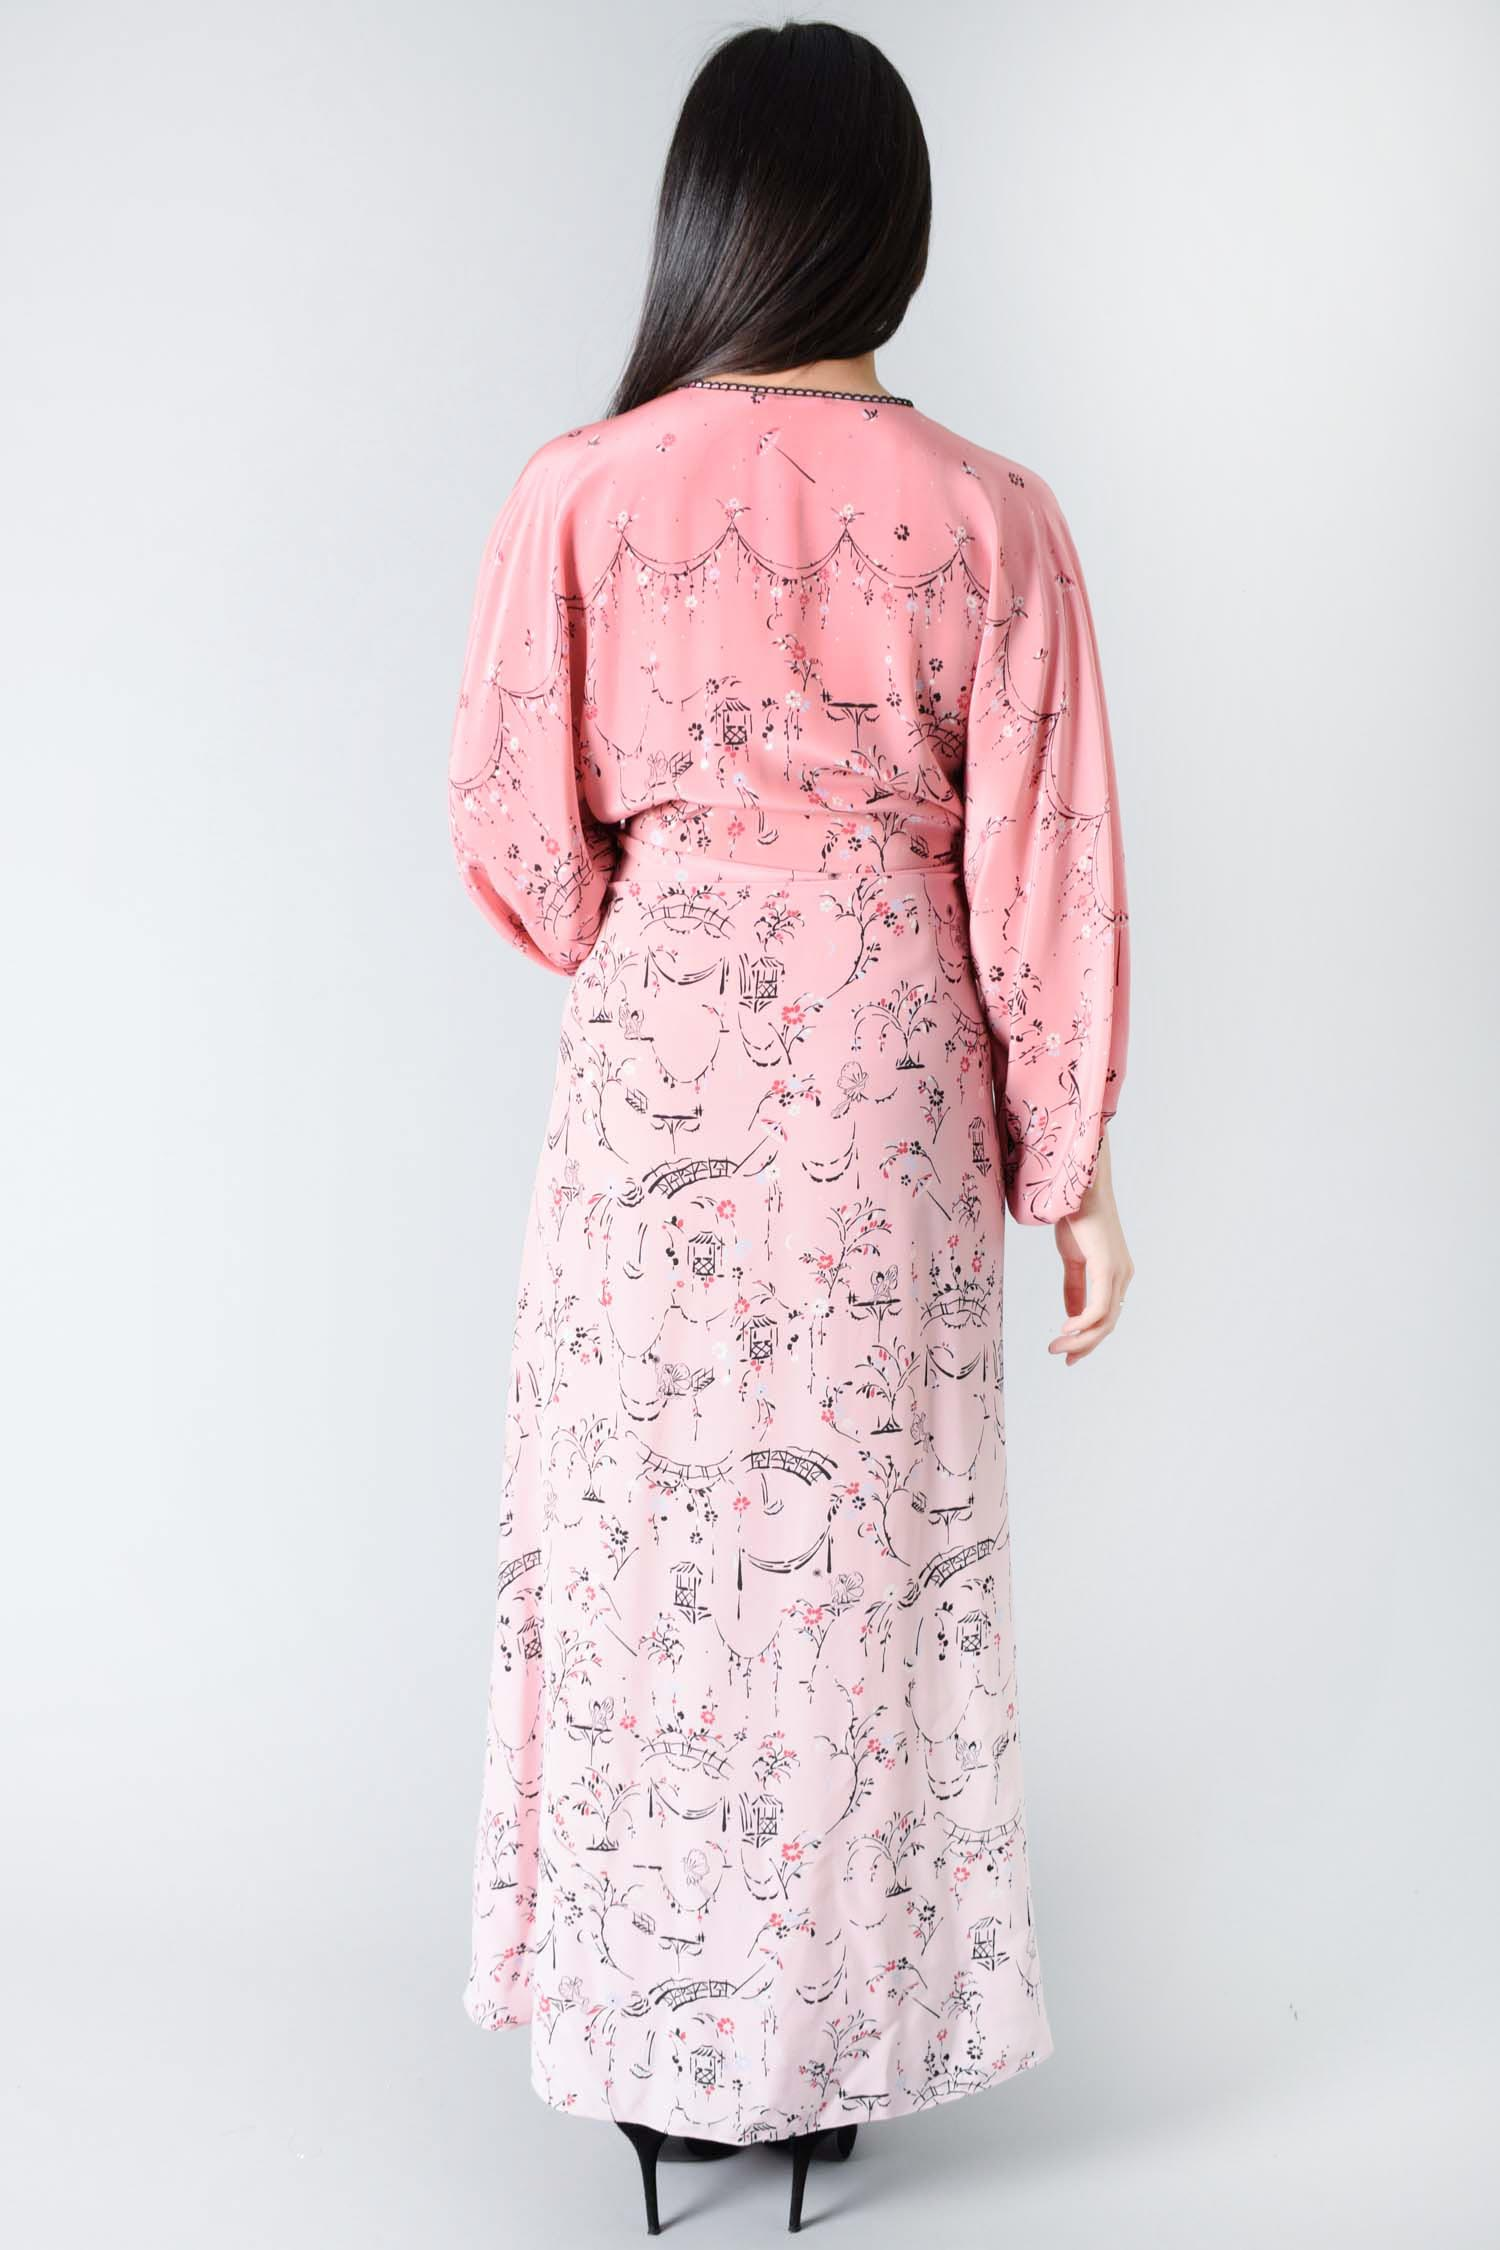 Vilshenko Pink Ombre Printed Floral Quarter-Length Sleeve Dress Size 10